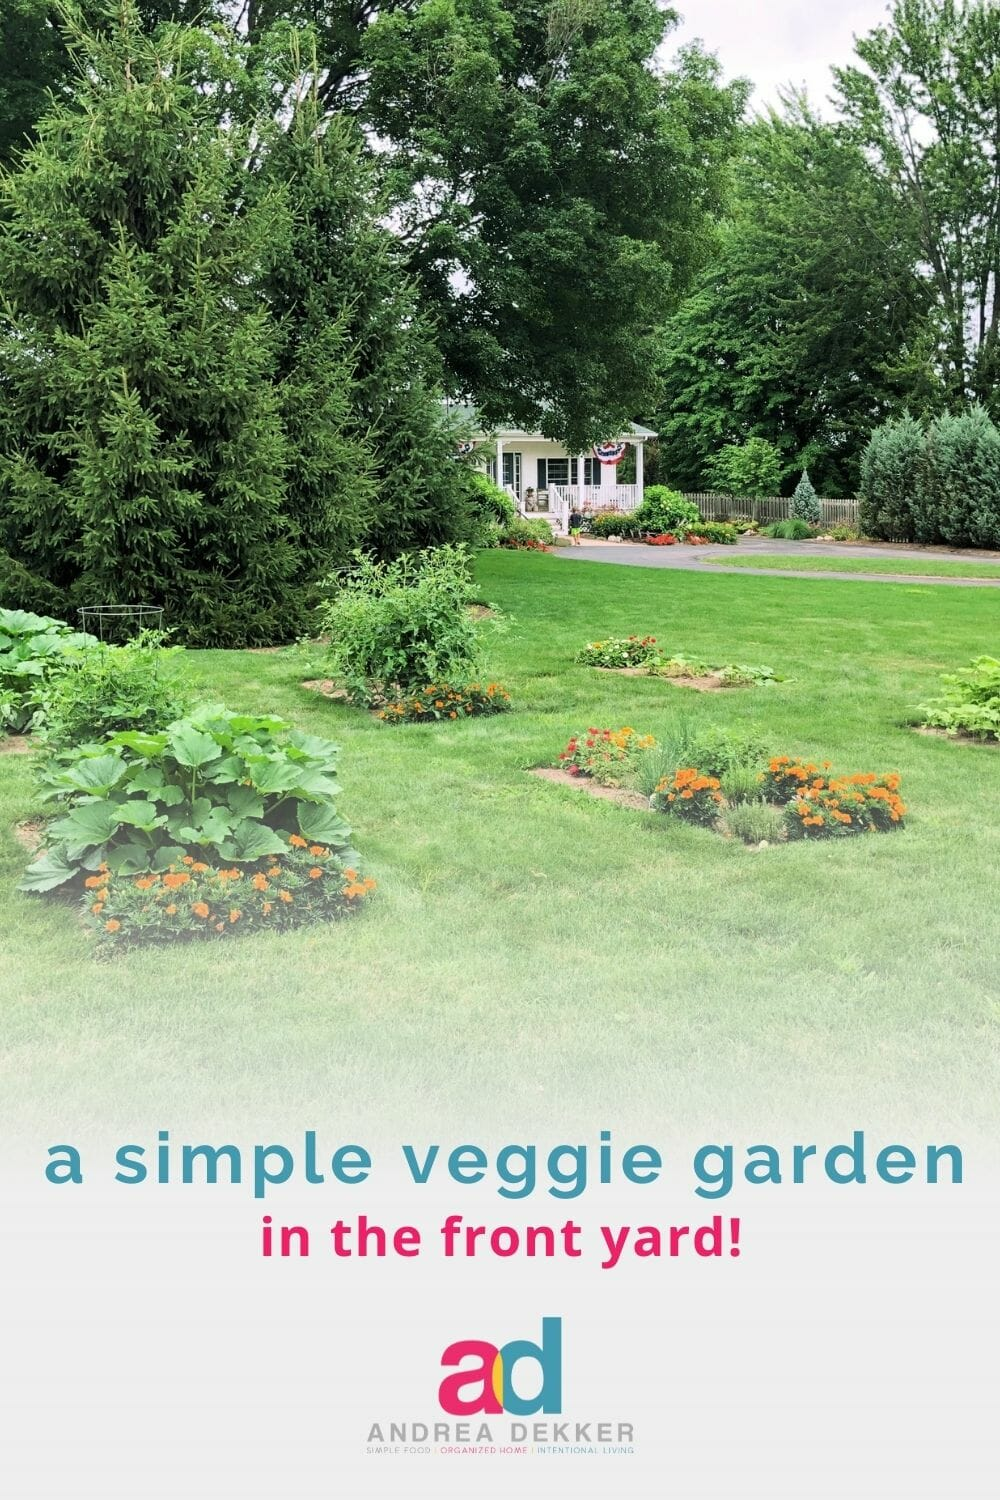 With just a little bit of effort, we created a simple (yet abundant) front yard vegetable garden in one day, for less than $100. See the full transformation! via @andreadekker